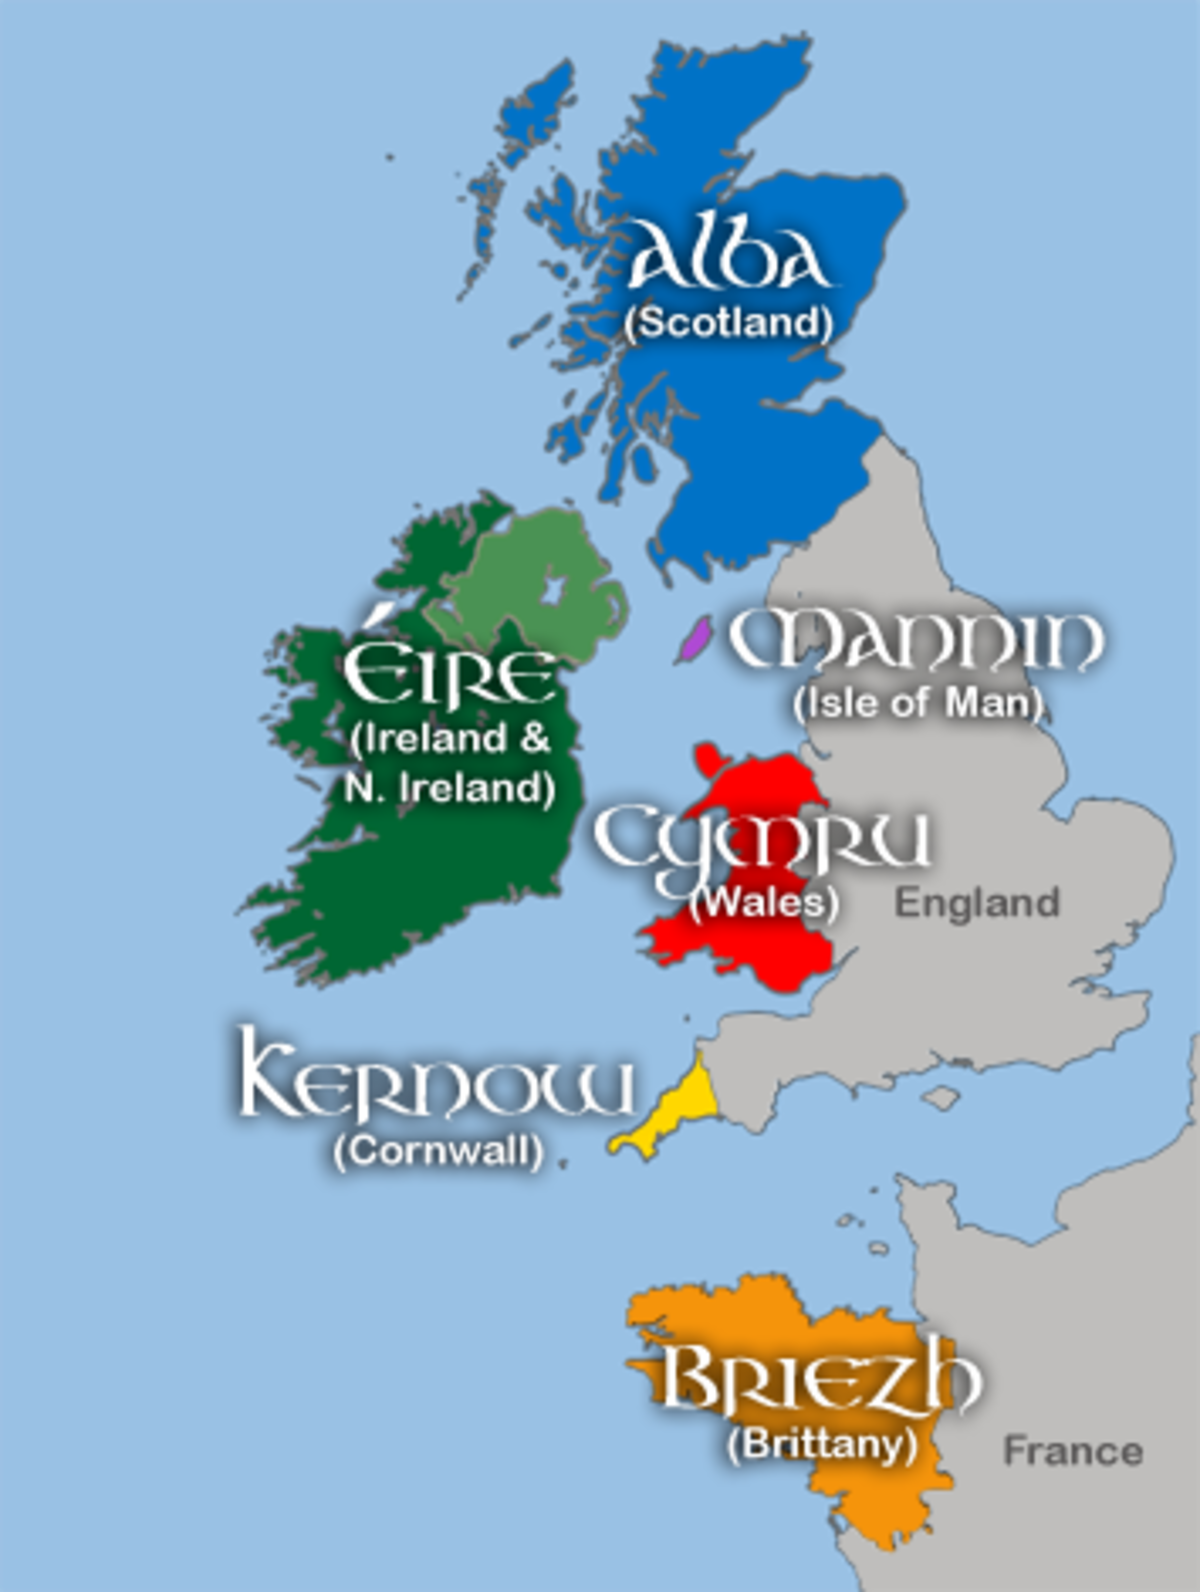 Celtic Nations. .. It's Briezh bitch